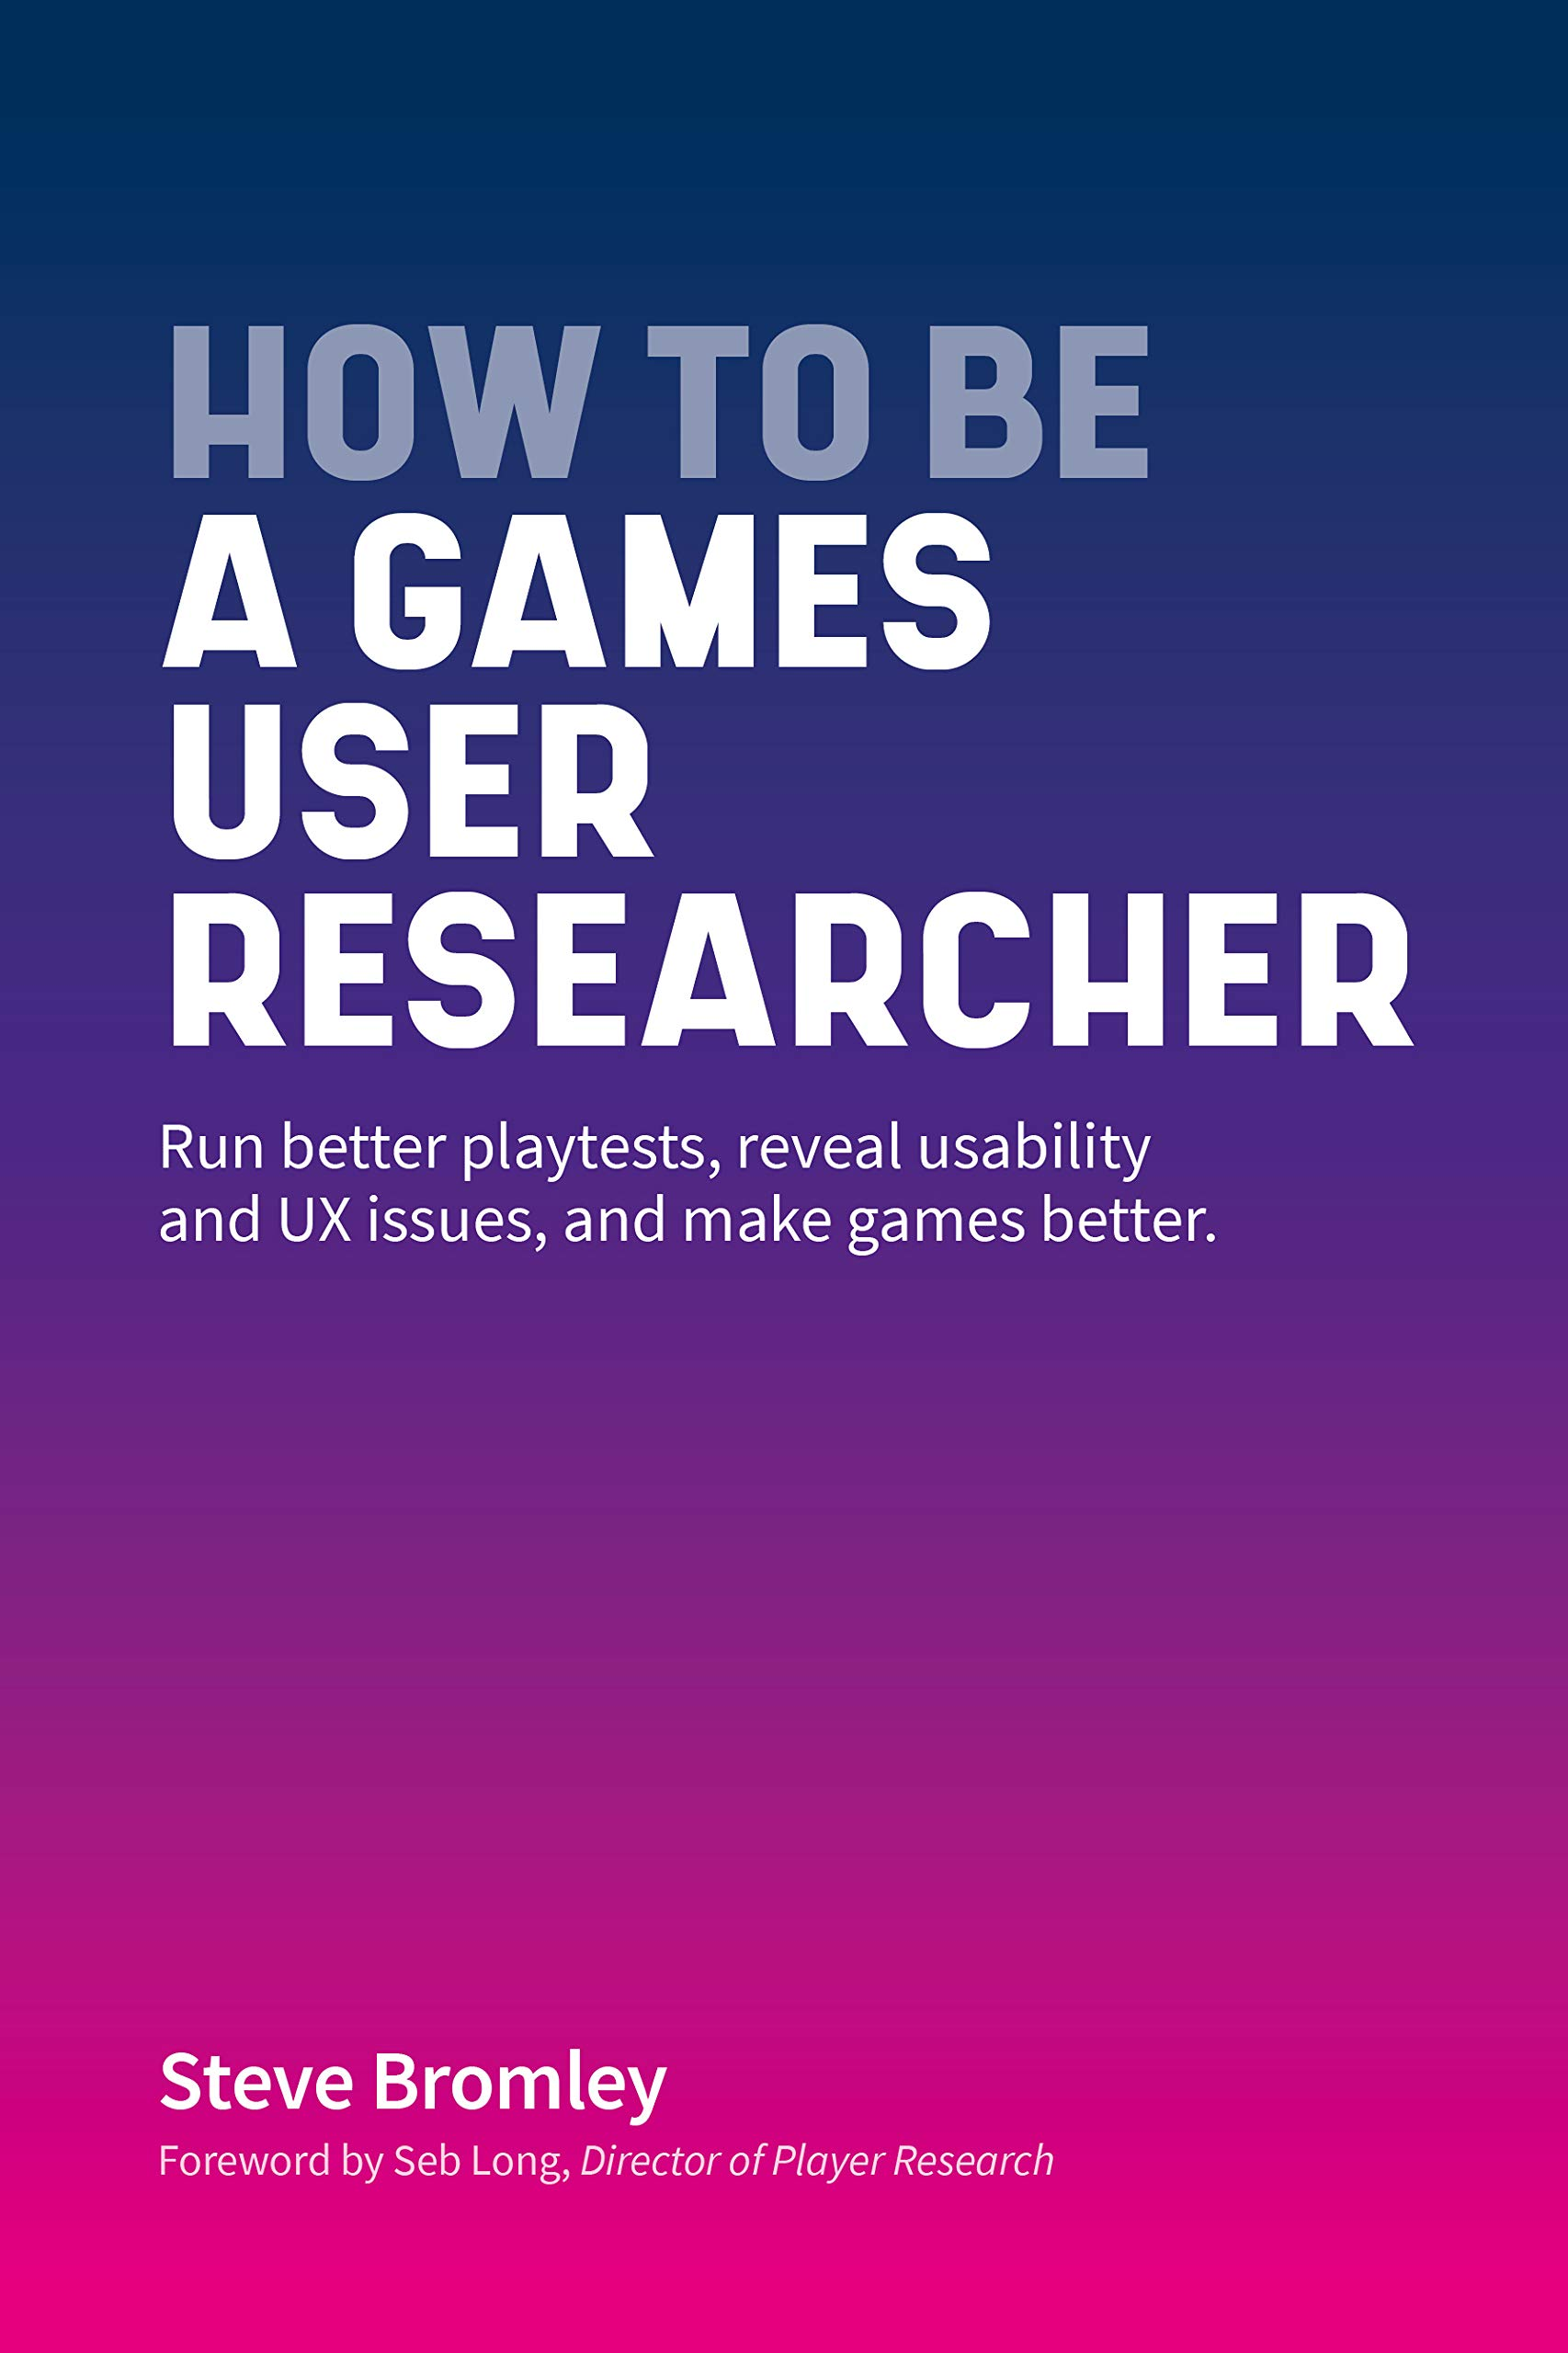 How To Be A Games User Researcher: Run better playtests, reveal usability and games UX issues, and make games better